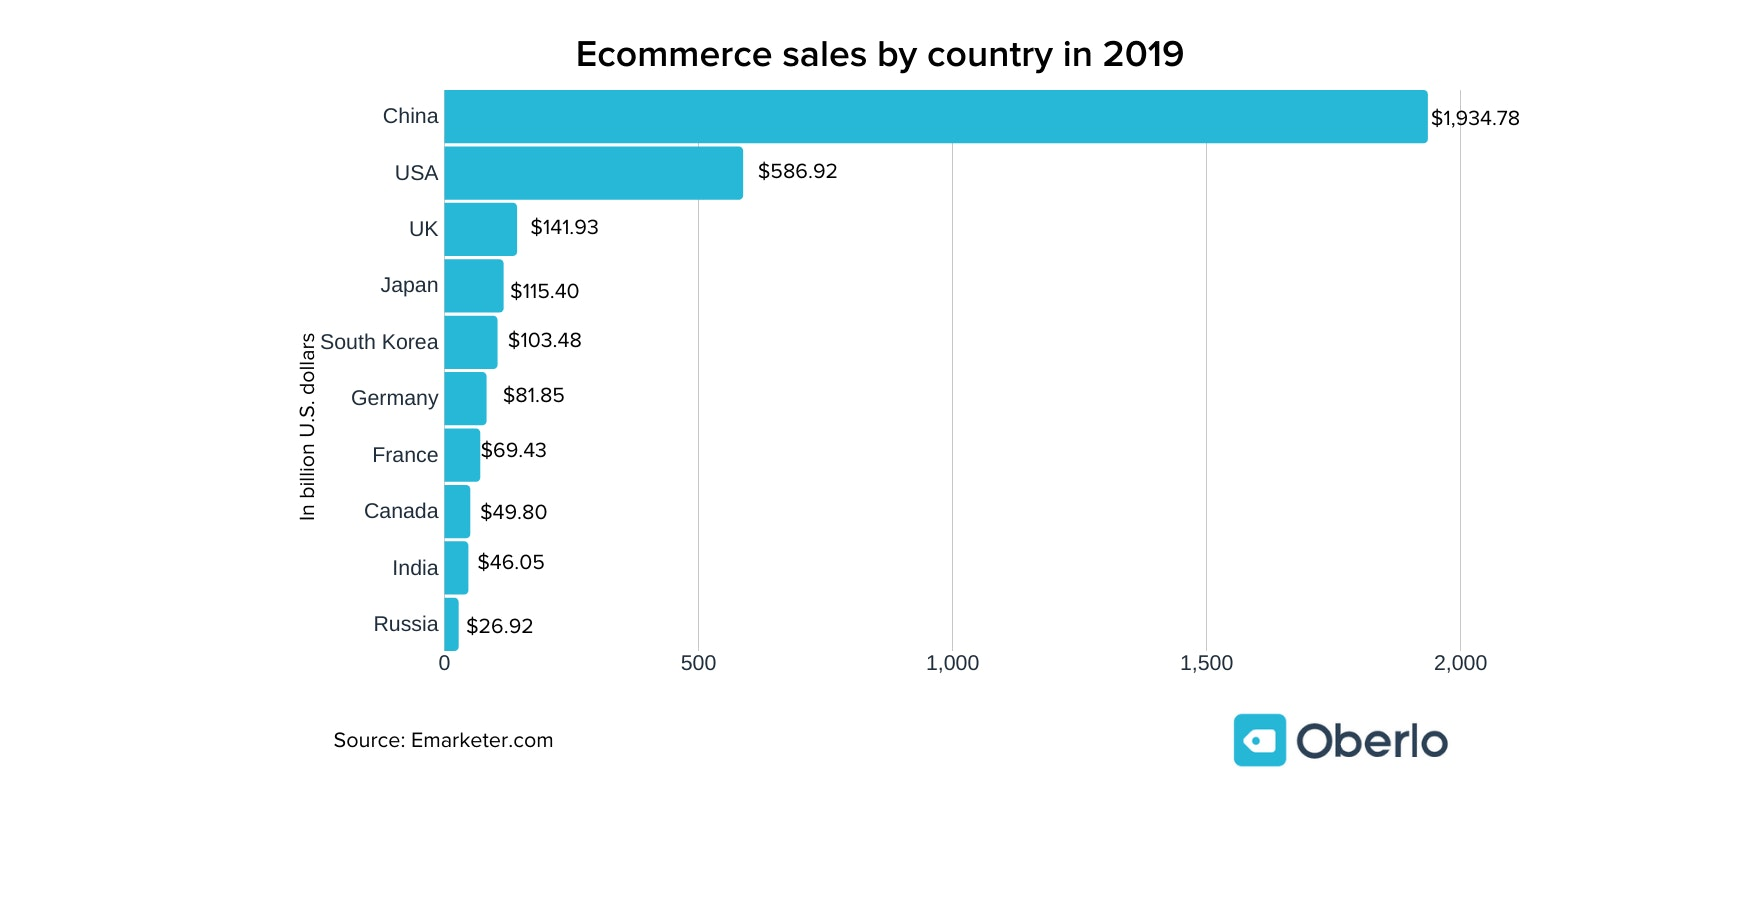 ecommerce sales by country